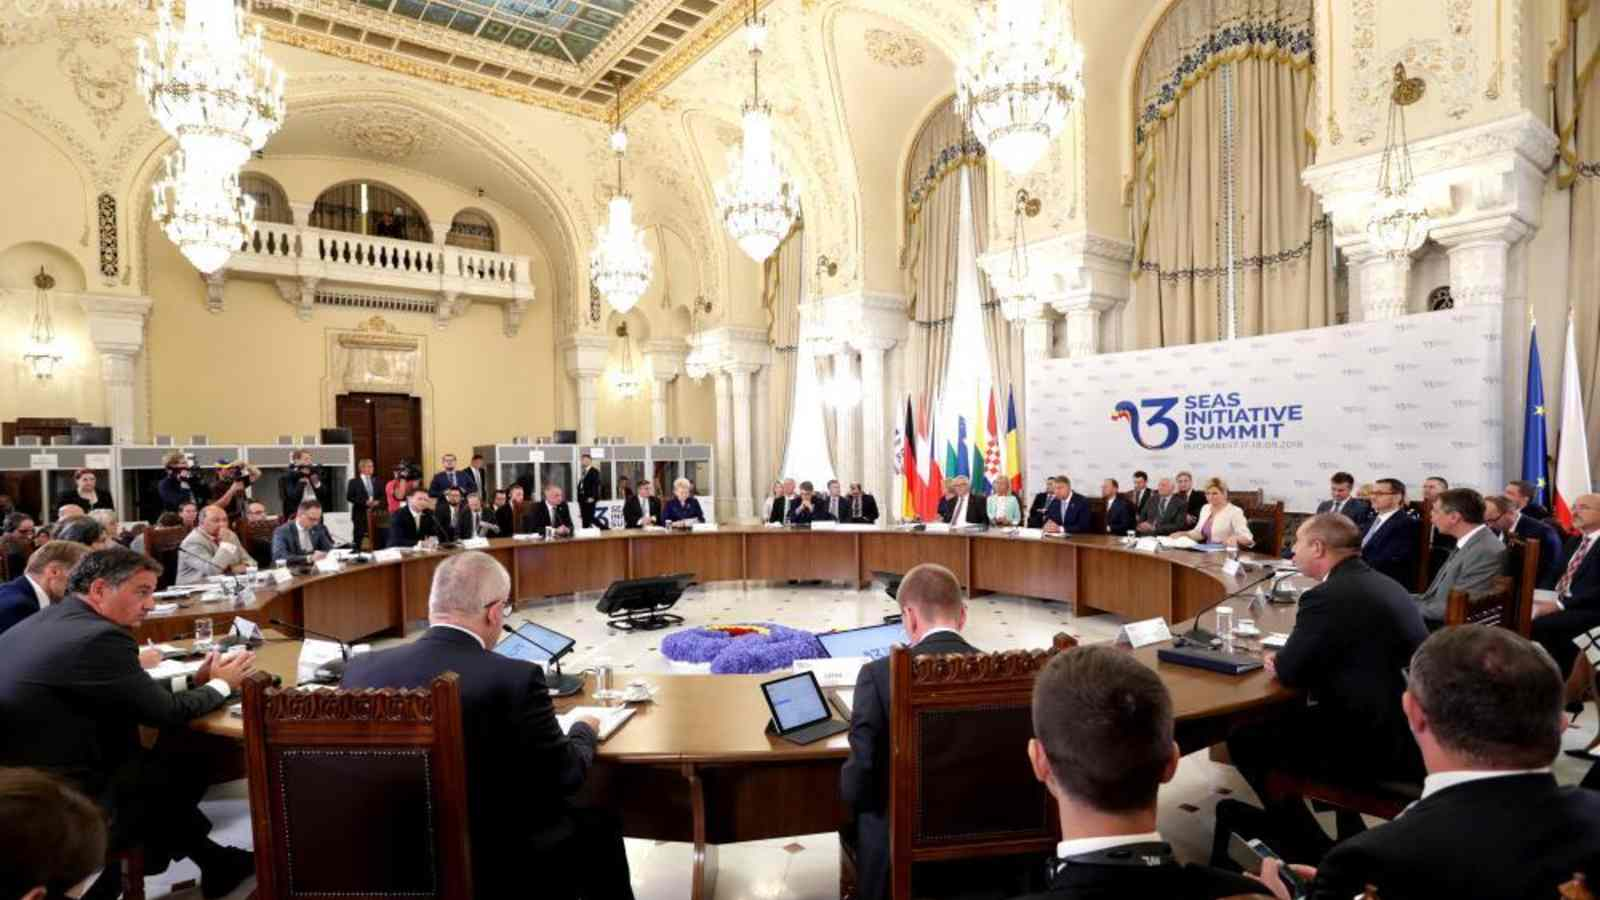 The Bulgarian Head of State is on a visit to Romania to take part in the Three Seas initiative summit. September 18, 2018